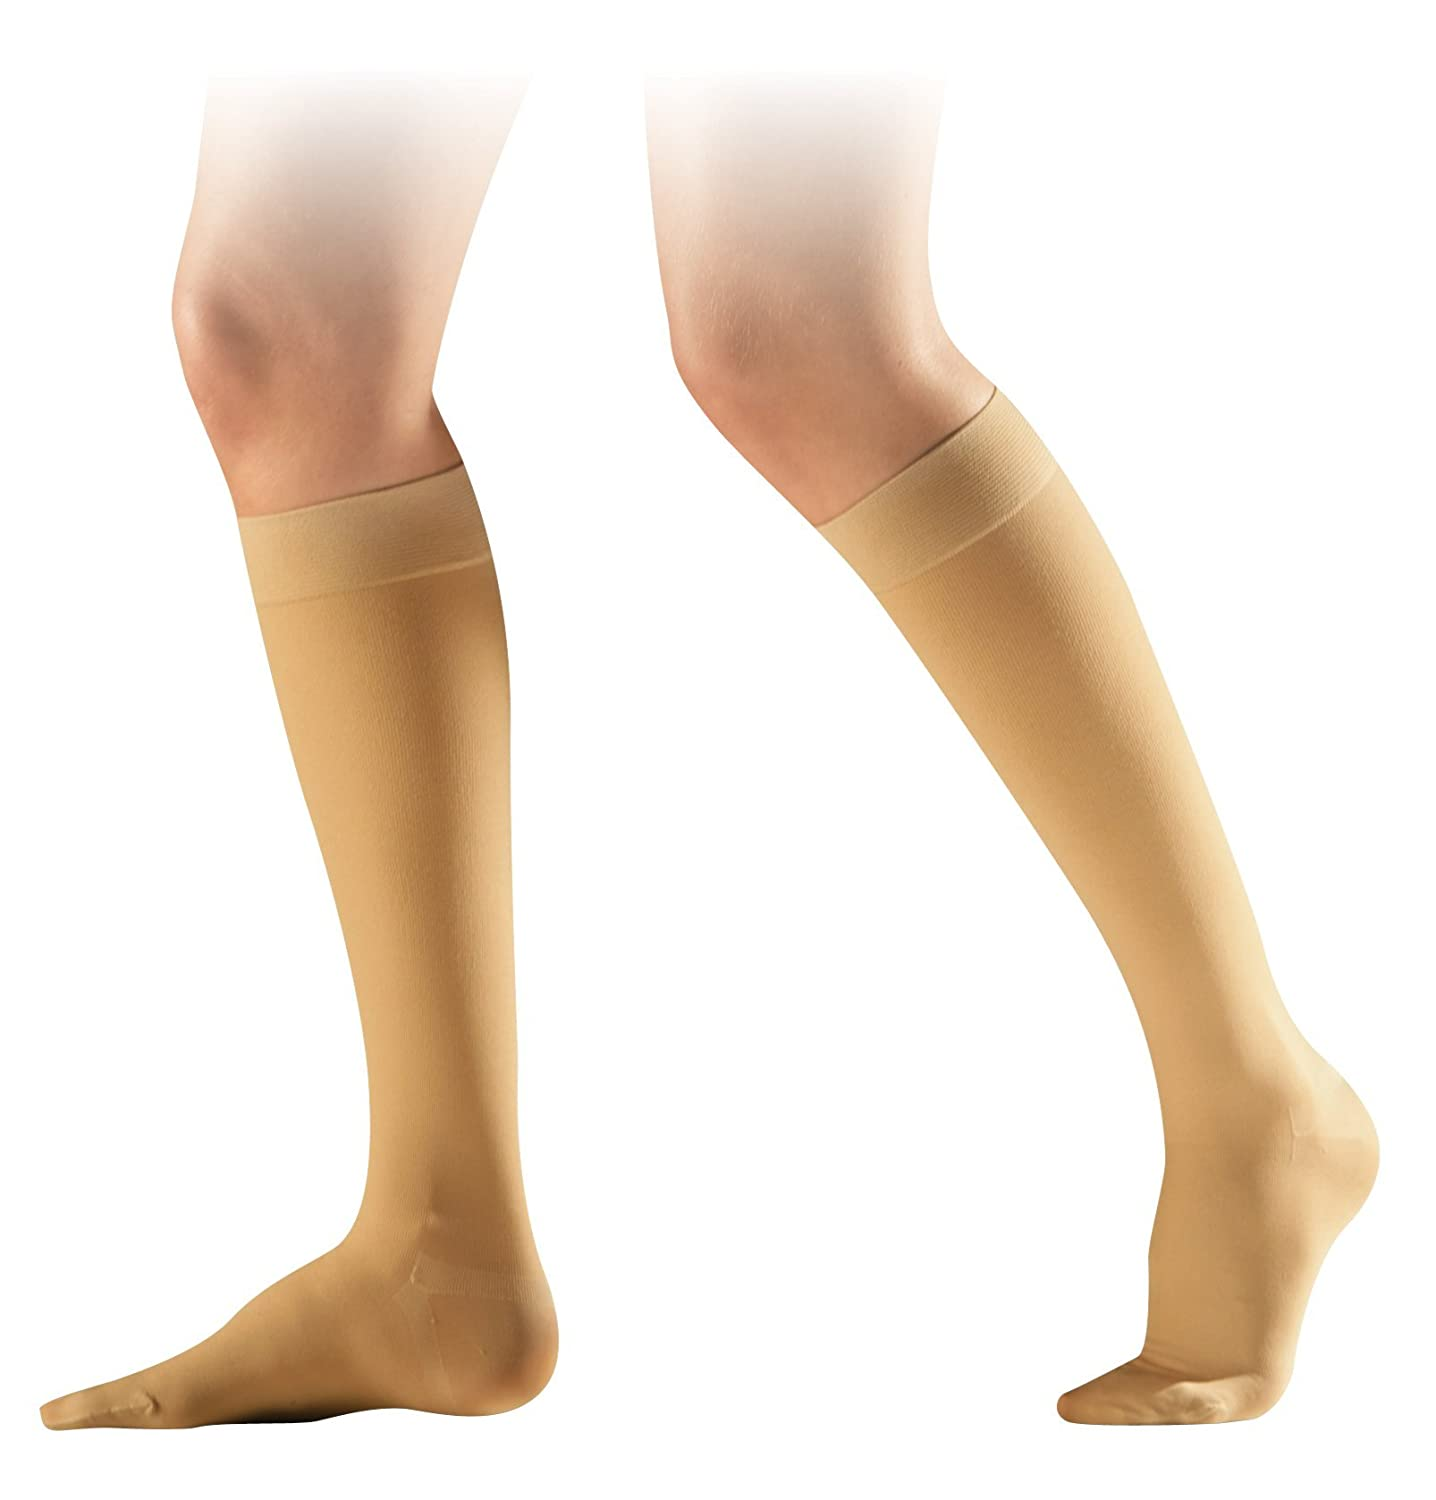 756335af25 SIGVARIS COTTON CLASS 2 REGULAR CLOSED TOE COMPRESSION CALF STOCKINGS -  NATURE: Amazon.co.uk: Health & Personal Care